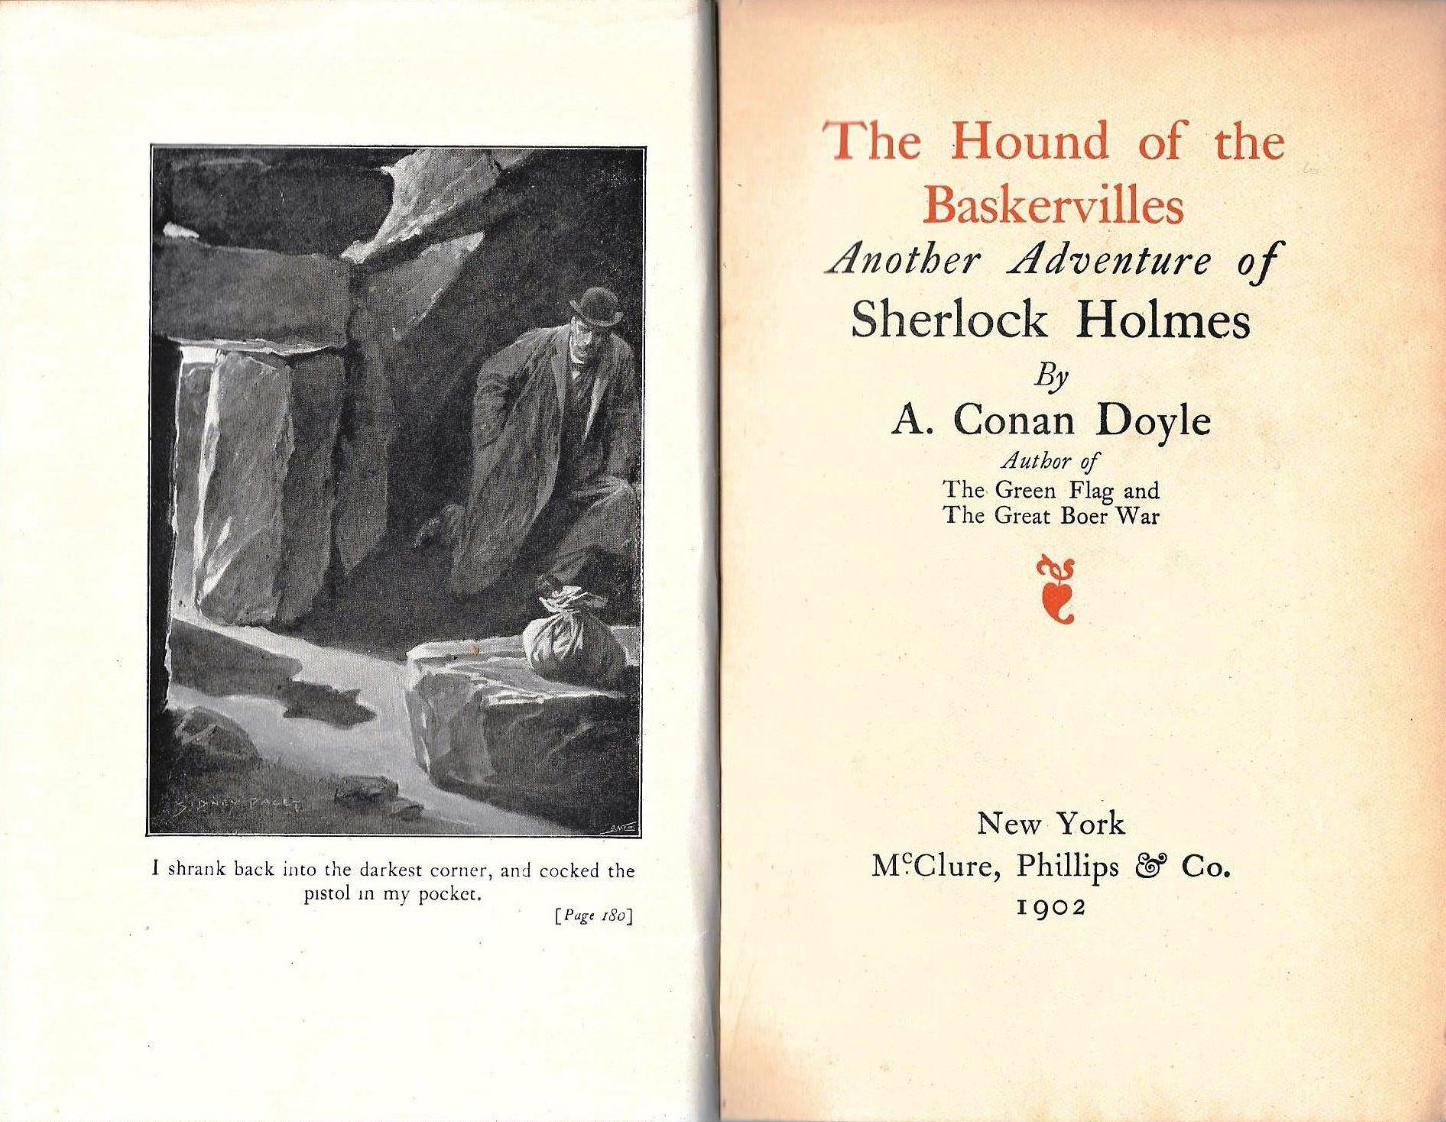 essay on book hound of the baskervilles Buy hound of the baskervilles arthur conan doyle essays for reference and request school thesis paper writing help for apa dissertations on hound of the baskervilles arthur conan doyle.